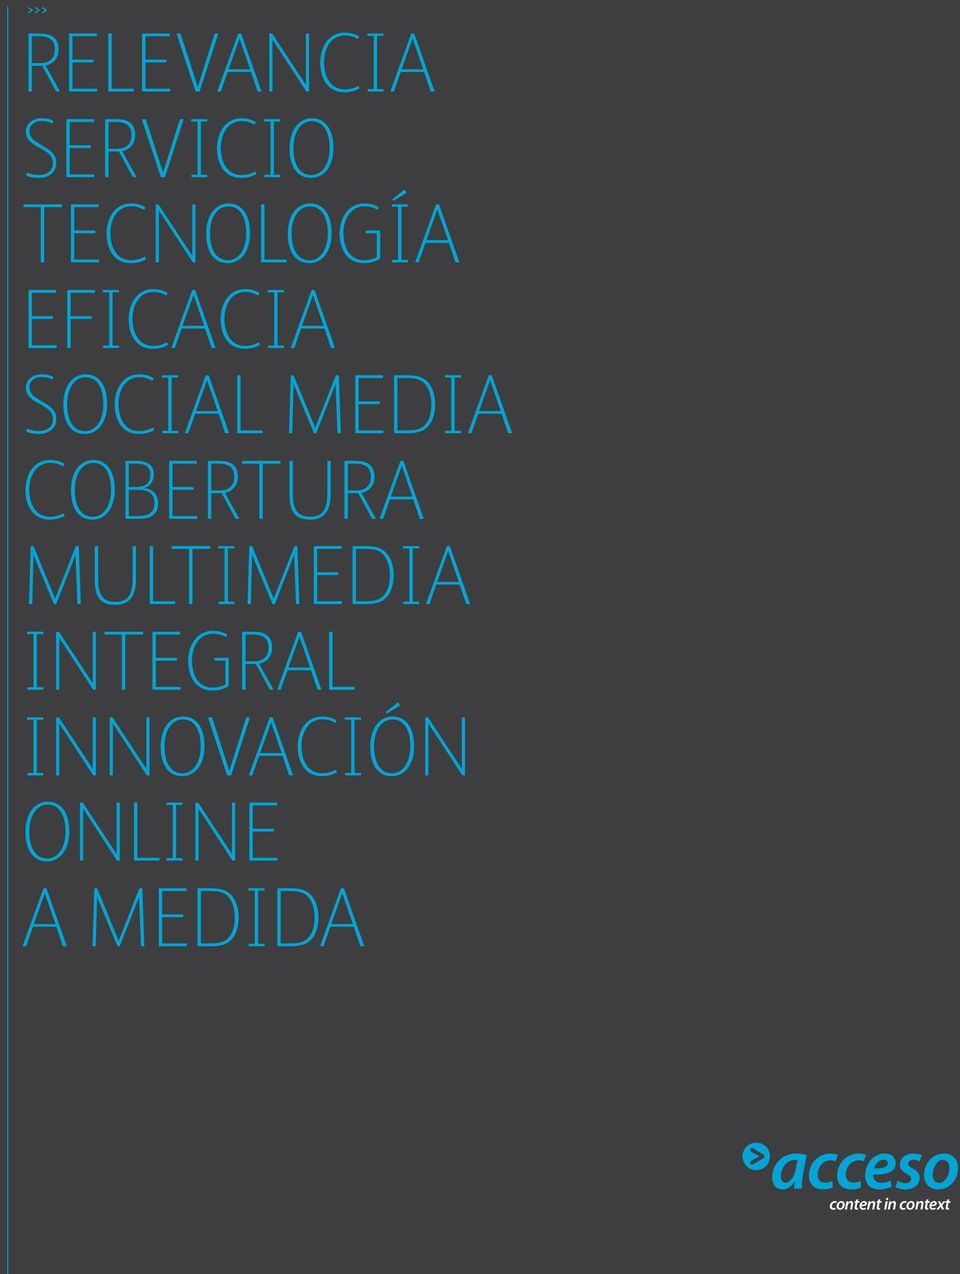 MULTIMEDIA integral INNOVACIÓN